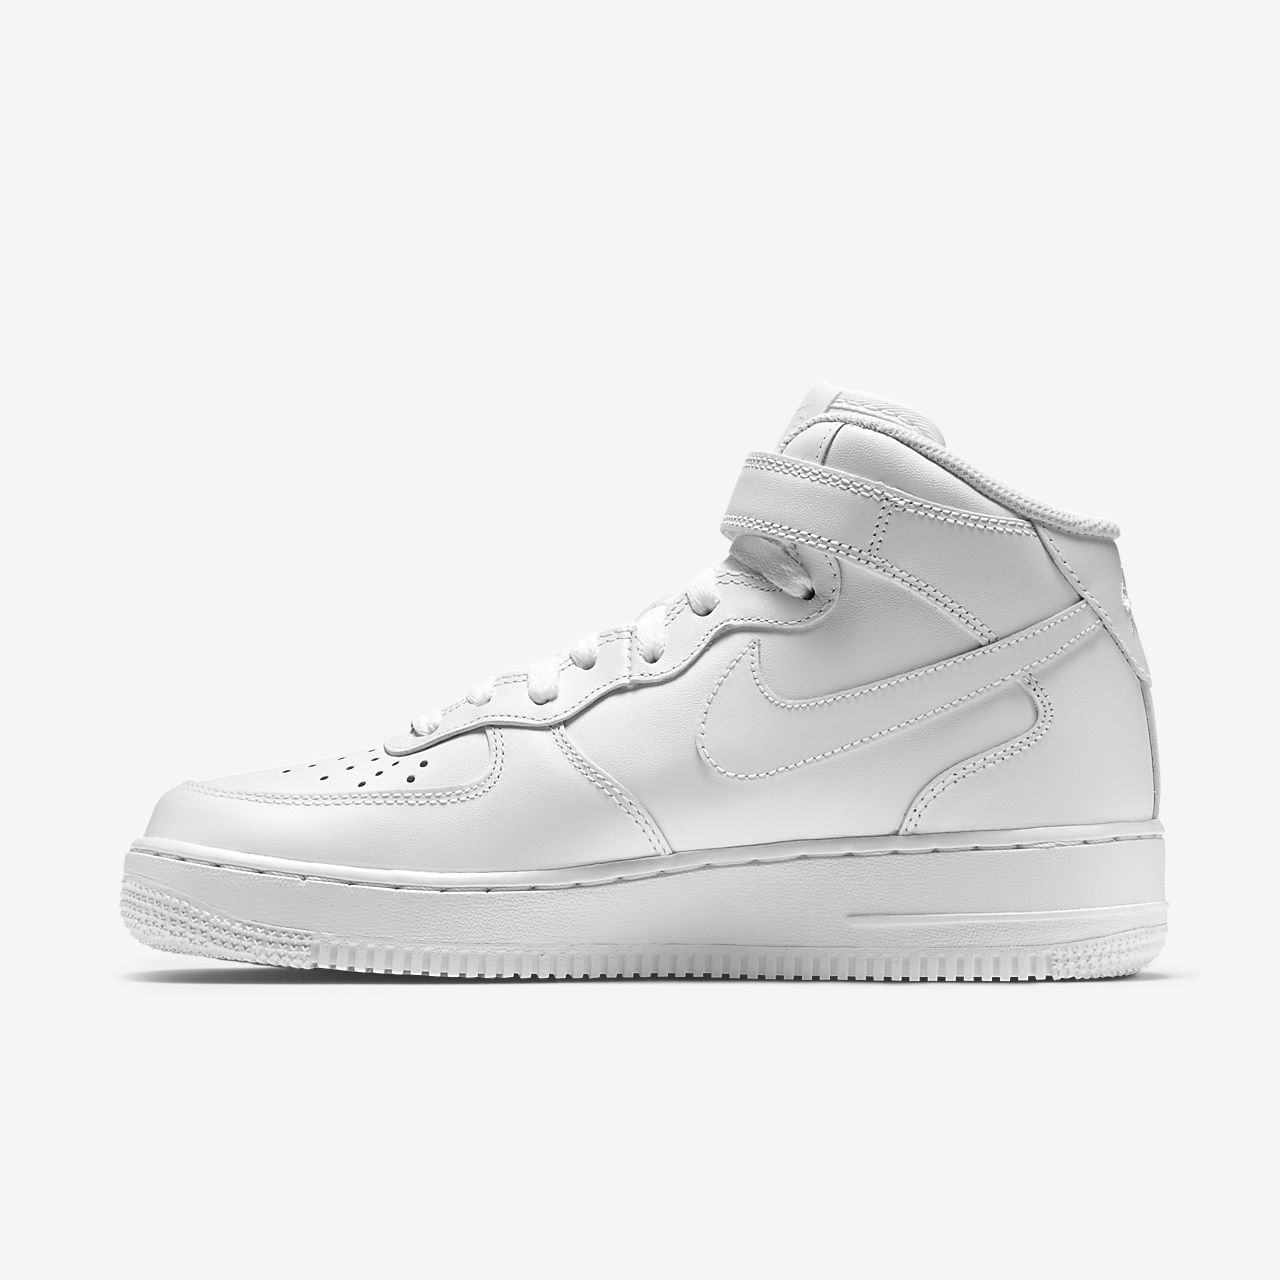 Nike - Damen - Wmns Air Force 1 Mid '07 Le - Sneaker - weiß mPfaT5d